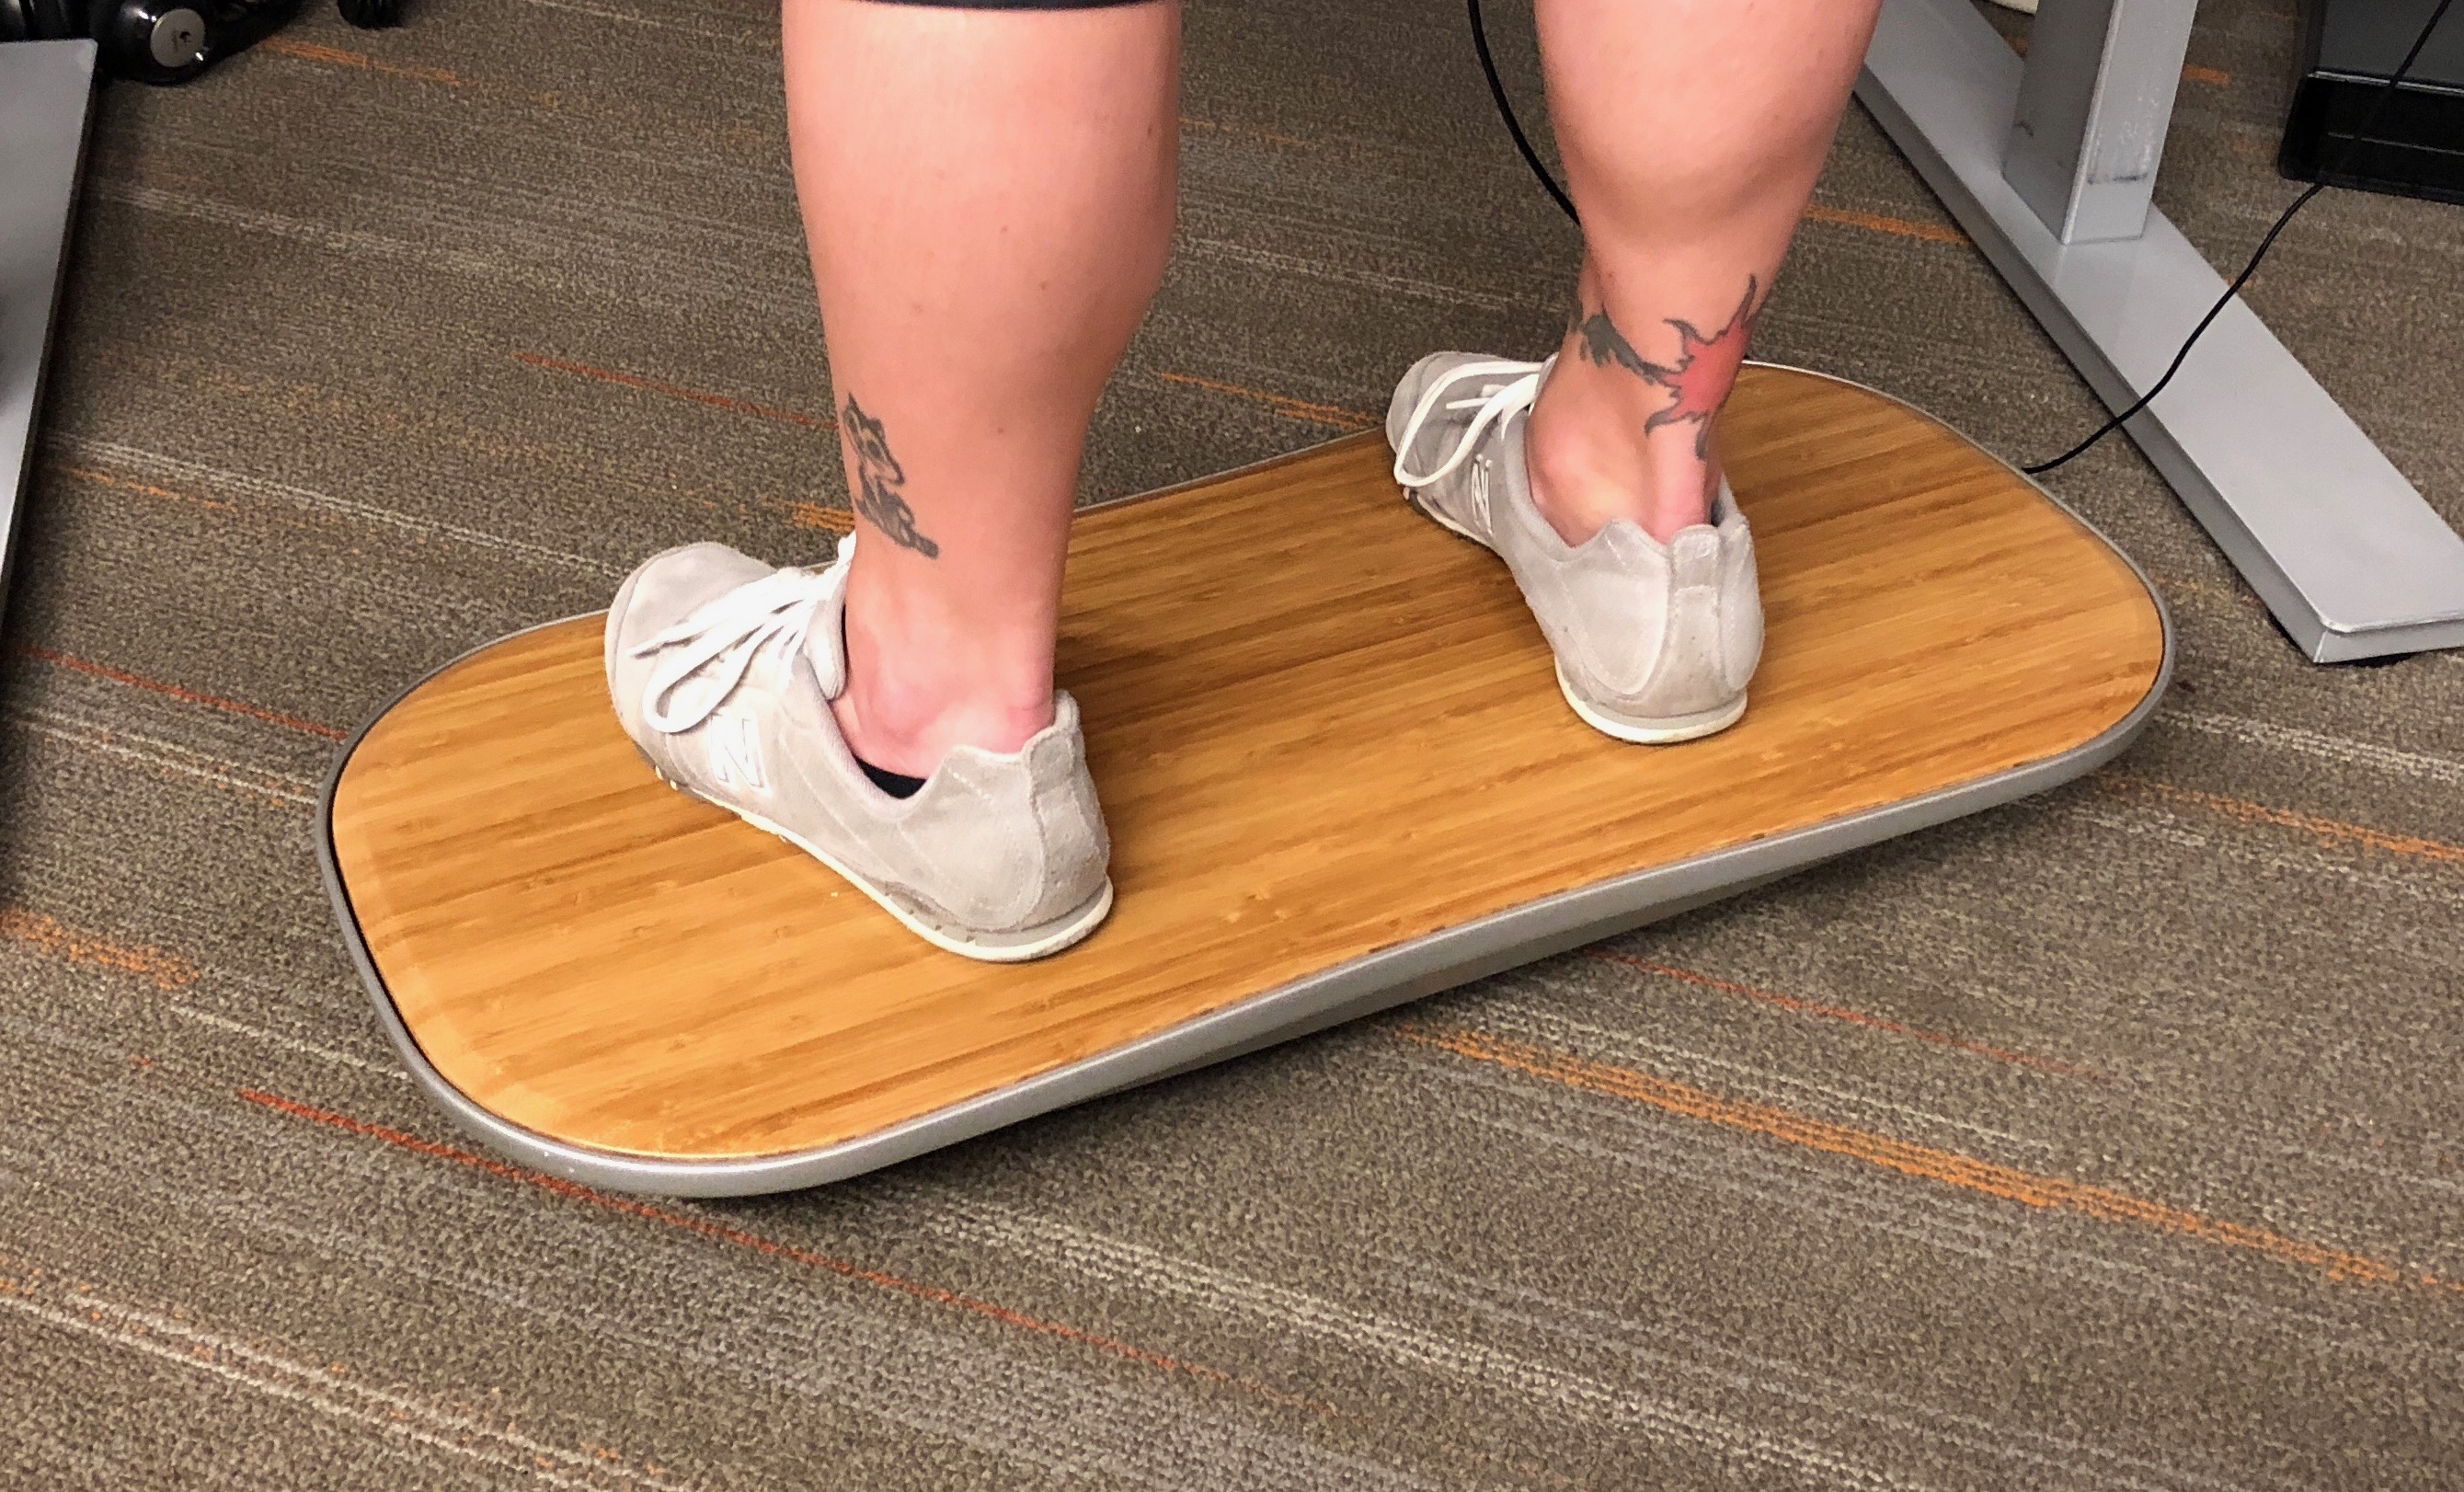 Fluidstance Bamboo Level Balance Board Review The Gadgeteer